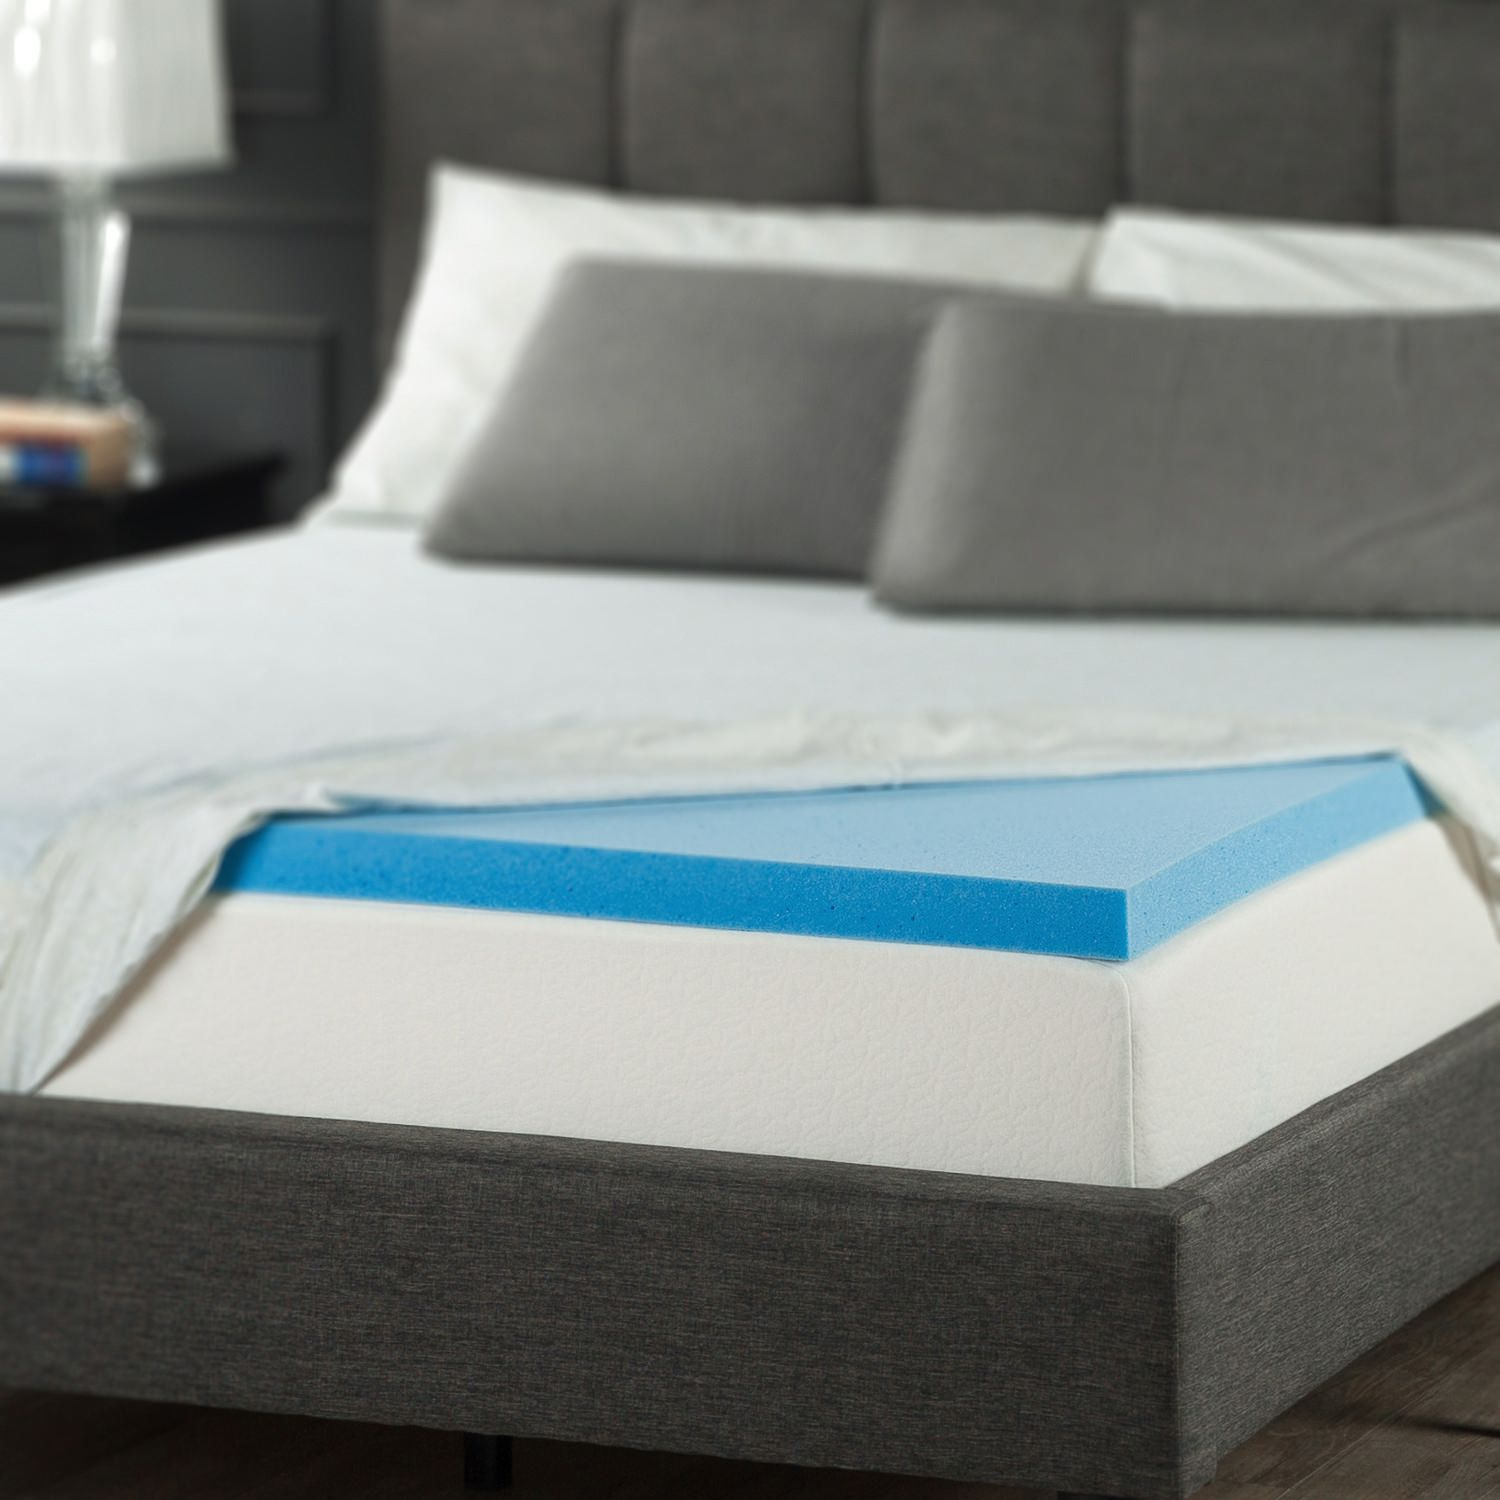 com forbes situation we find mattress together why toppers out ve you to s for cool finds the list your there that put help memory foam sites images topper pad best this